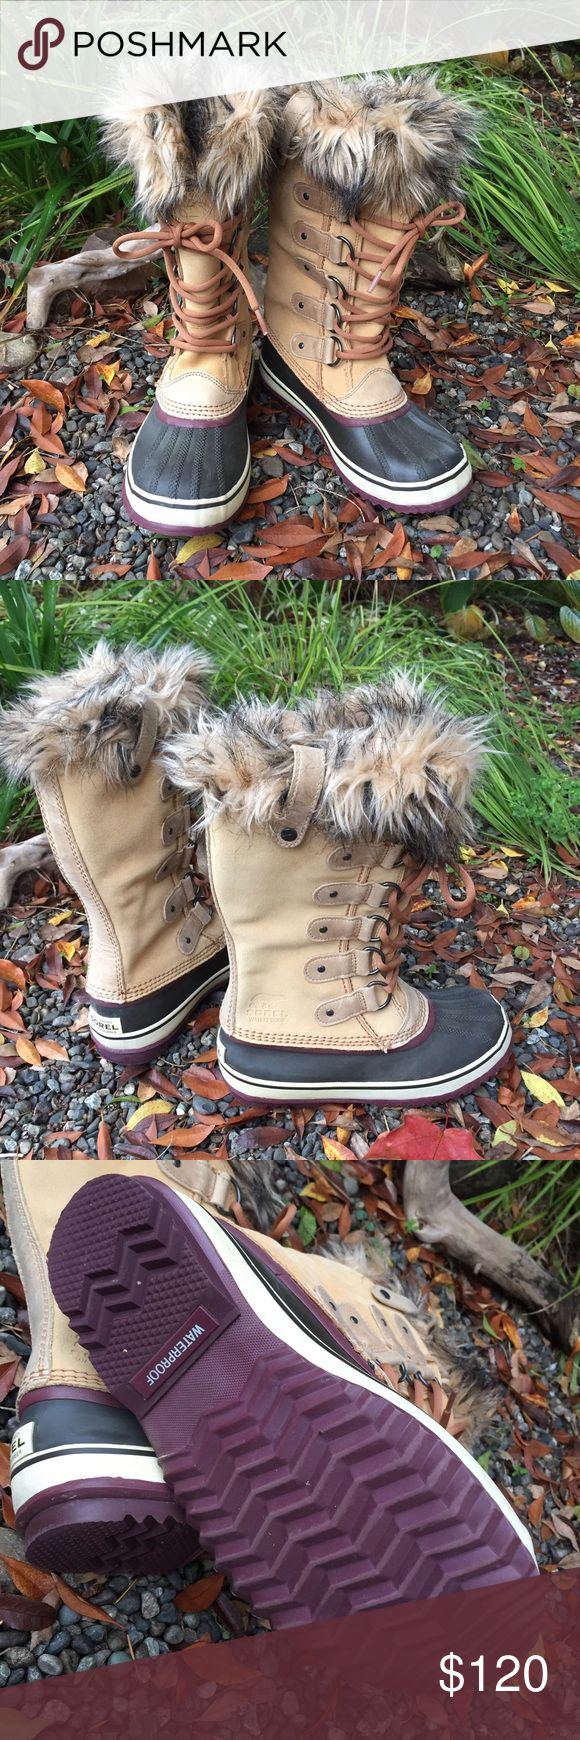 Sorel Joan Of Arc Boots Sorel Joan of Arctic Boots.  In excellent condition..  Suede Leather  uppers with rubber toes and sole.  Removable felt liner with Faux fur.  Pull on boots.  These are super cute and will keep your feet warm in style.  Still in the stores. Sorel Shoes Winter & Rain Boots